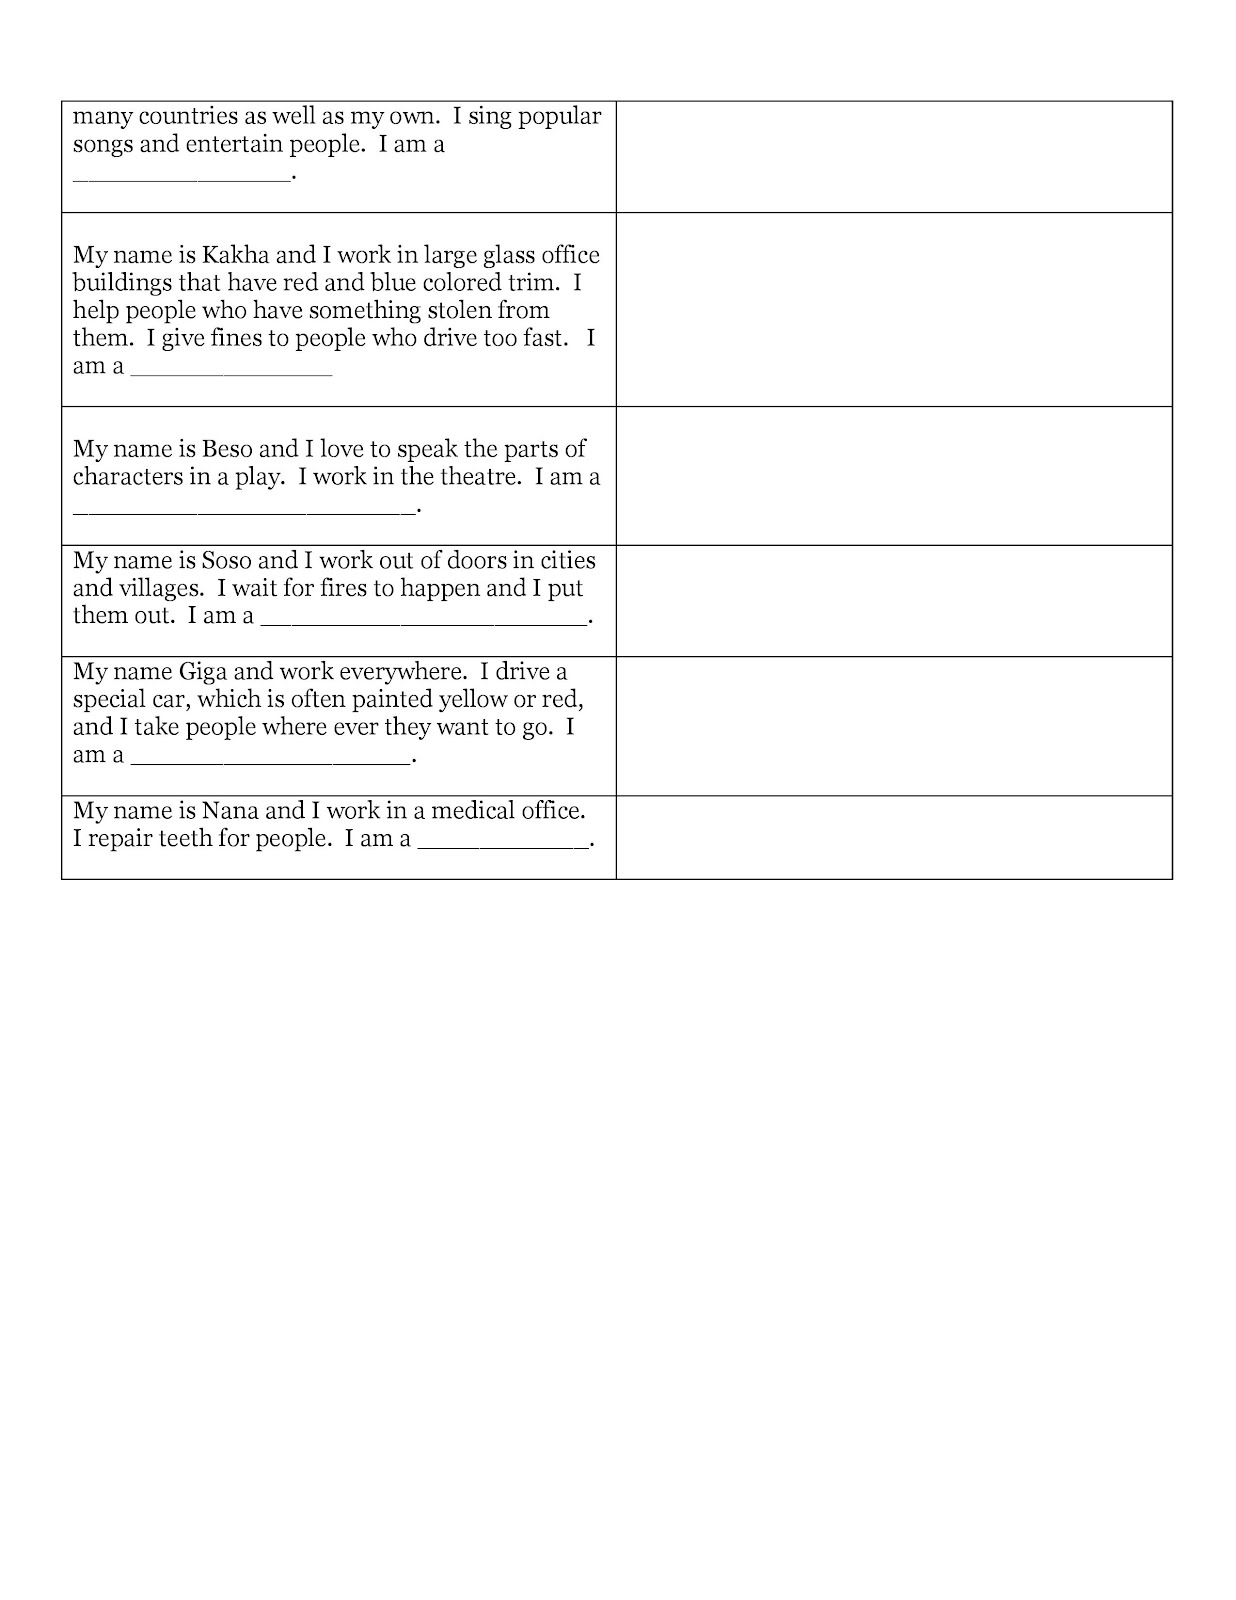 Content based instruction vocational and life choices create occupation worksheets for older learners robcynllc Choice Image